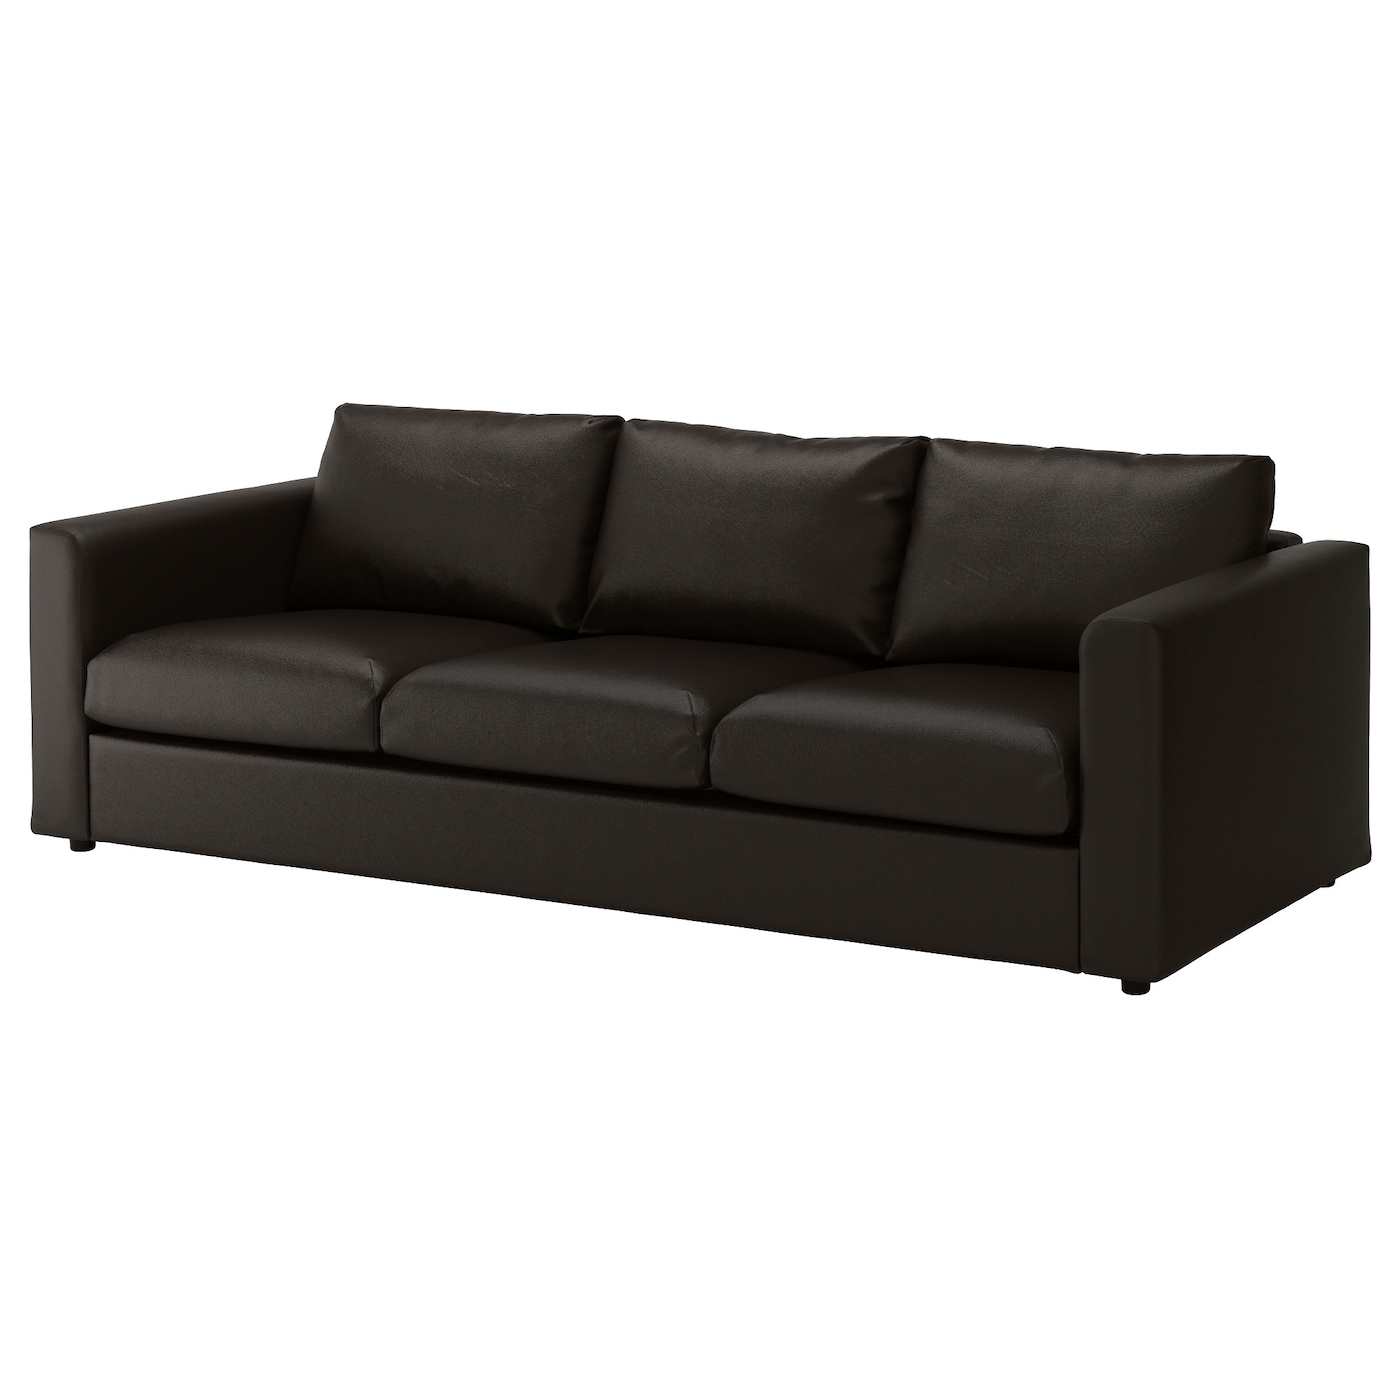 Ikea Vimle 3 Seat Sofa The Cover Is Easy To Keep Clean As It Can